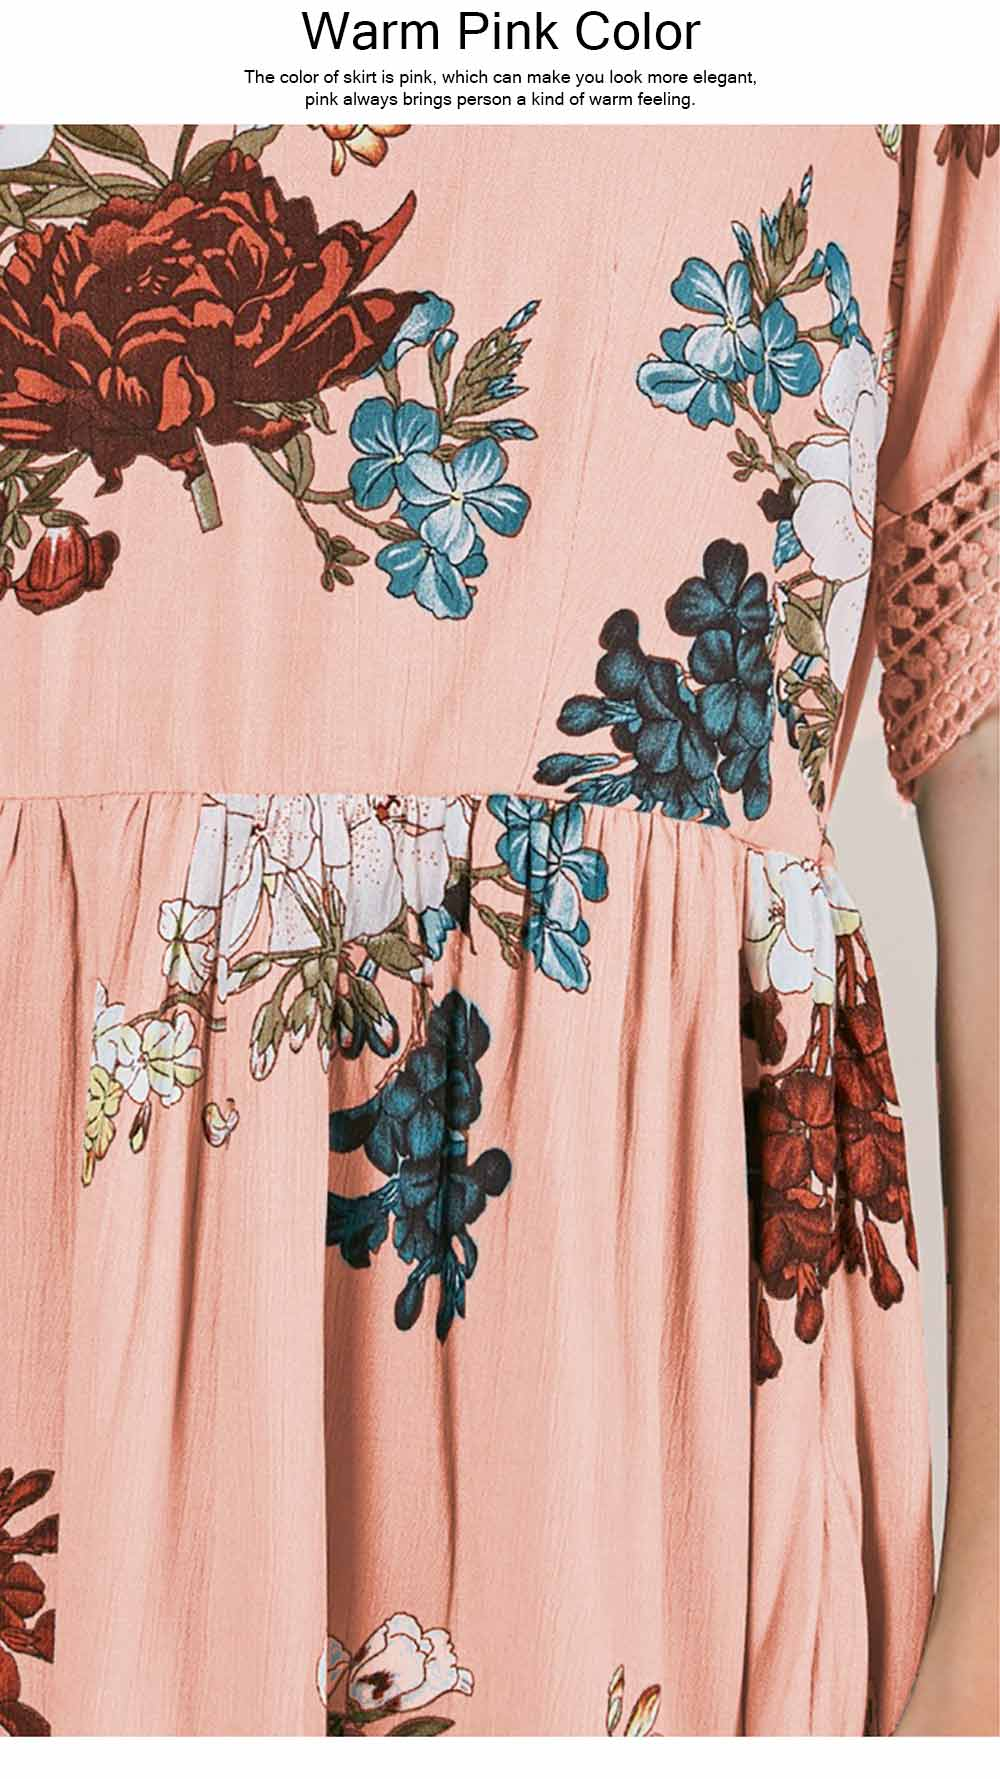 V Neck Women Dress, Breathable Short Dress with Lace Tail, Printing Pink Kilt, Women One-piece Dress Summer Pink 2019 3